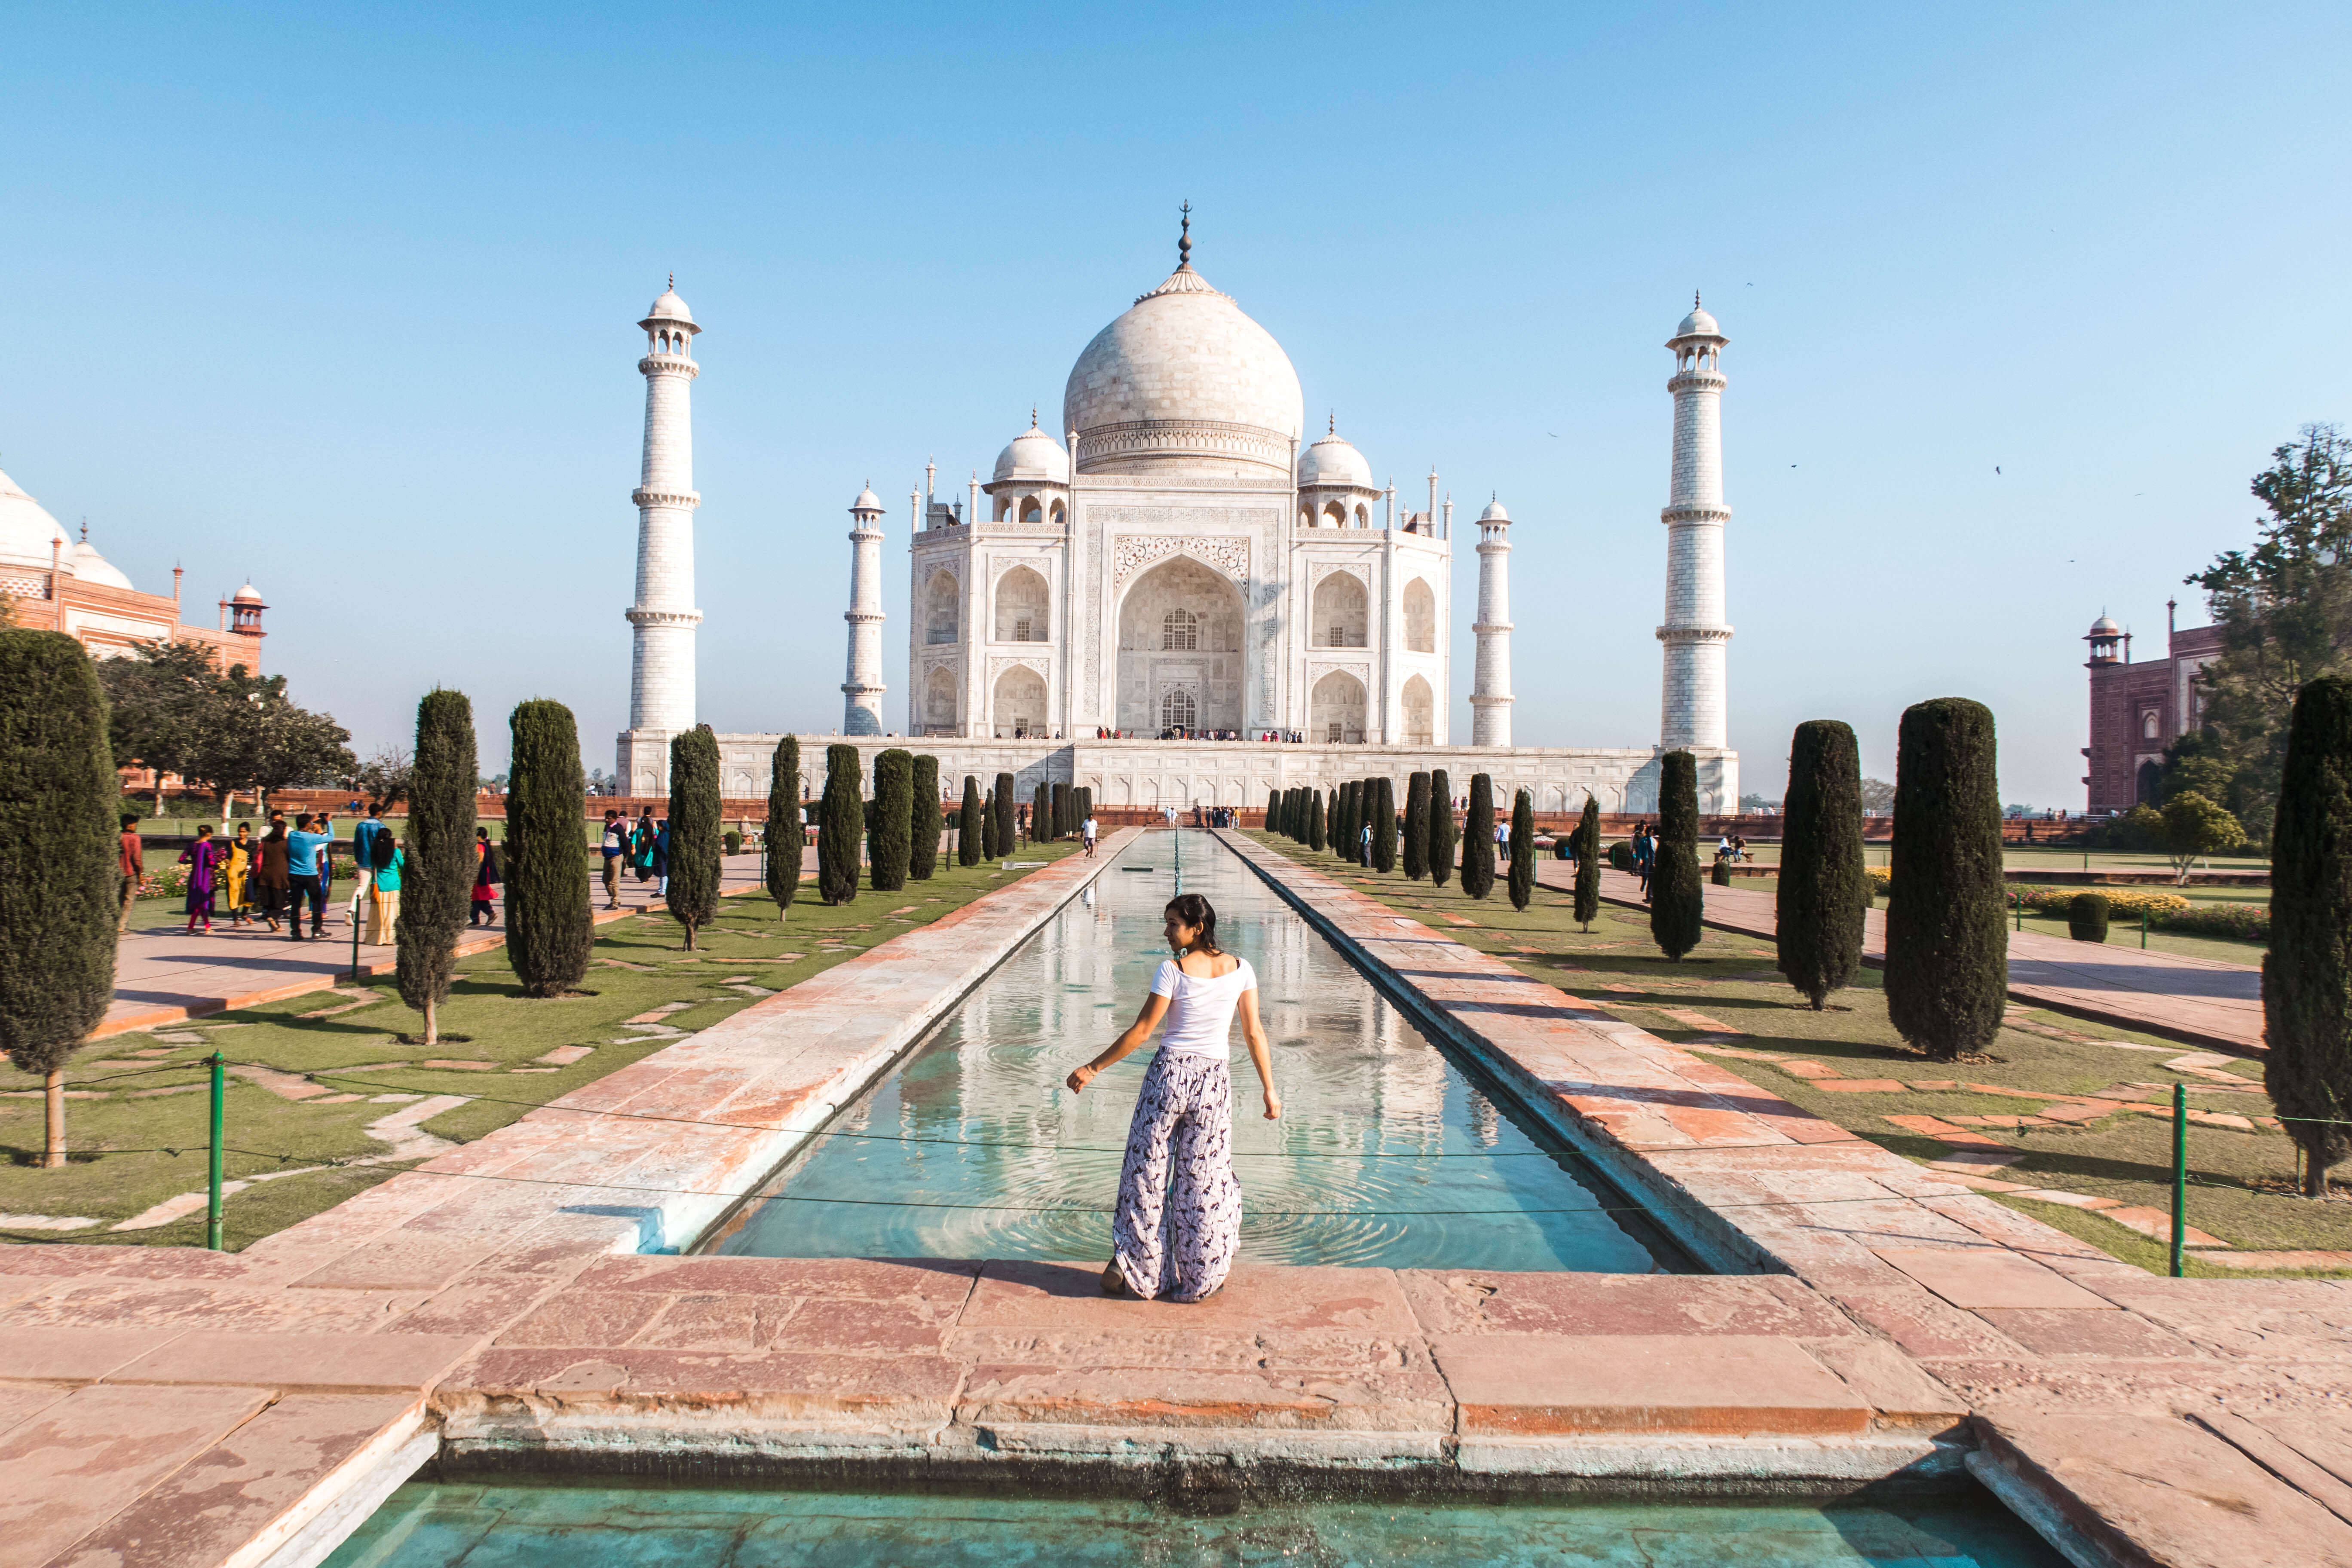 How To See the Taj Mahal at Sunrise in 11 Steps